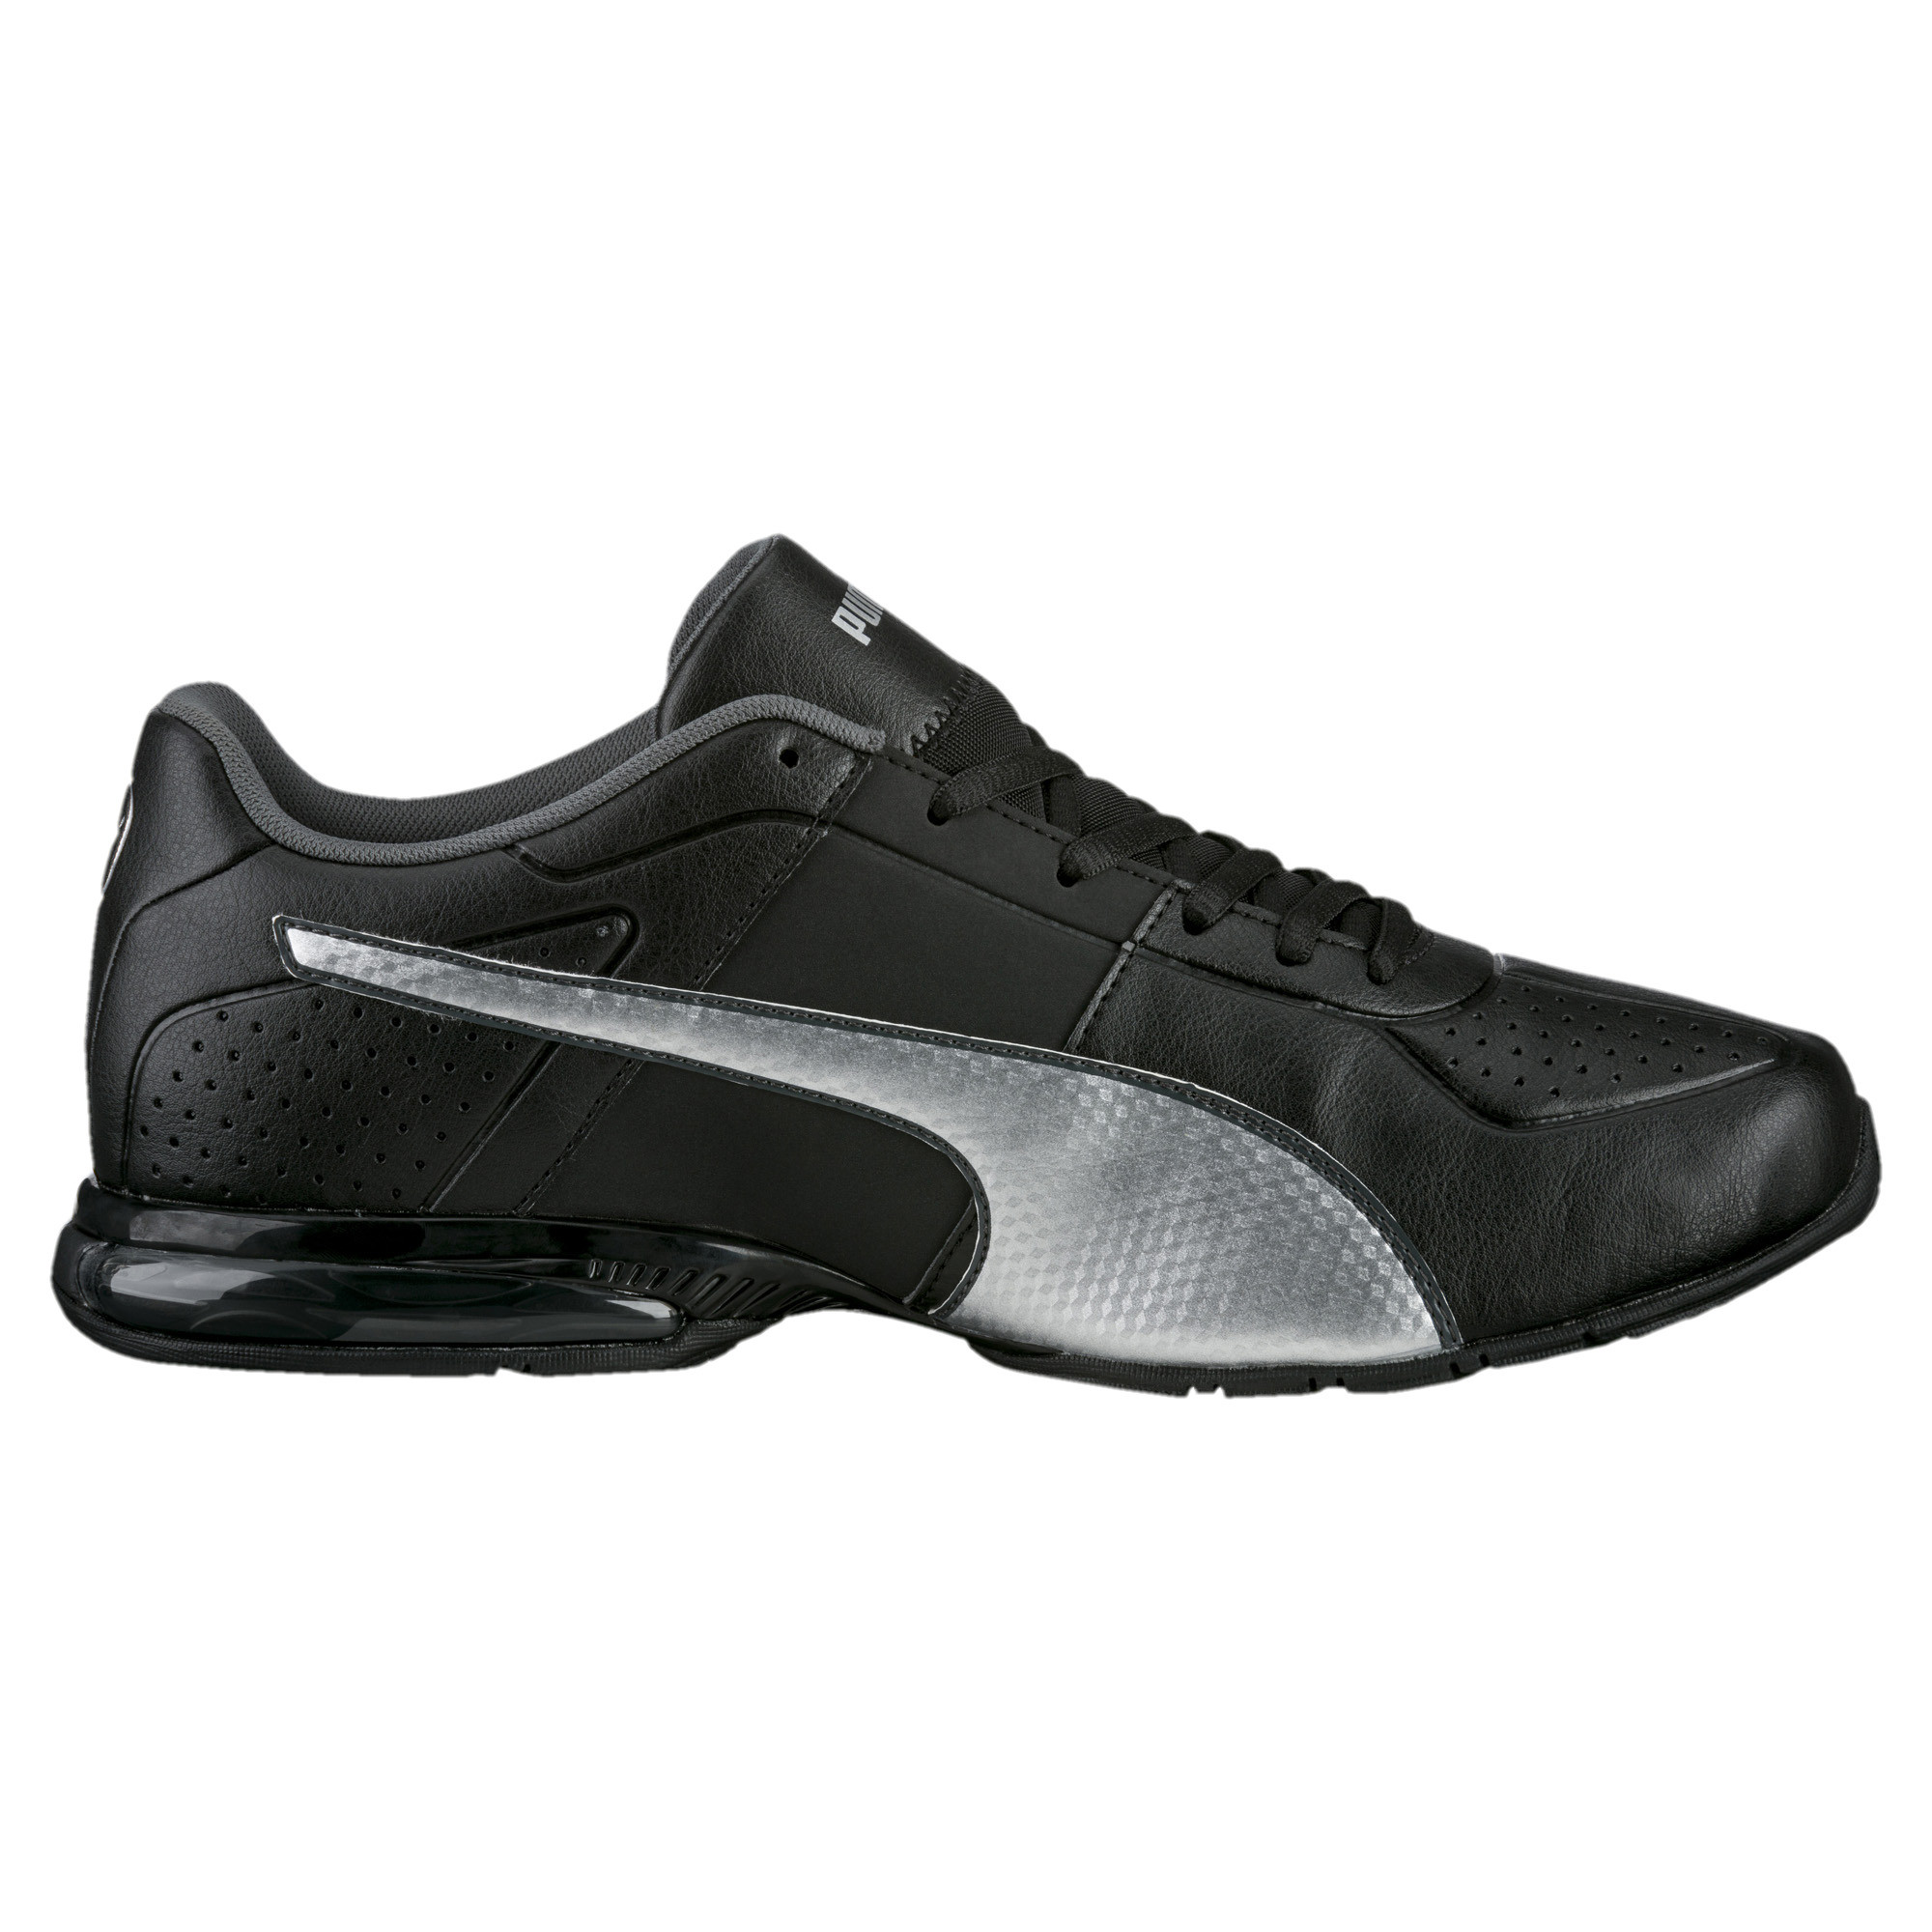 PUMA-CELL-Surin-2-FM-Men-039-s-Running-Shoes-Men-Shoe-Running thumbnail 10